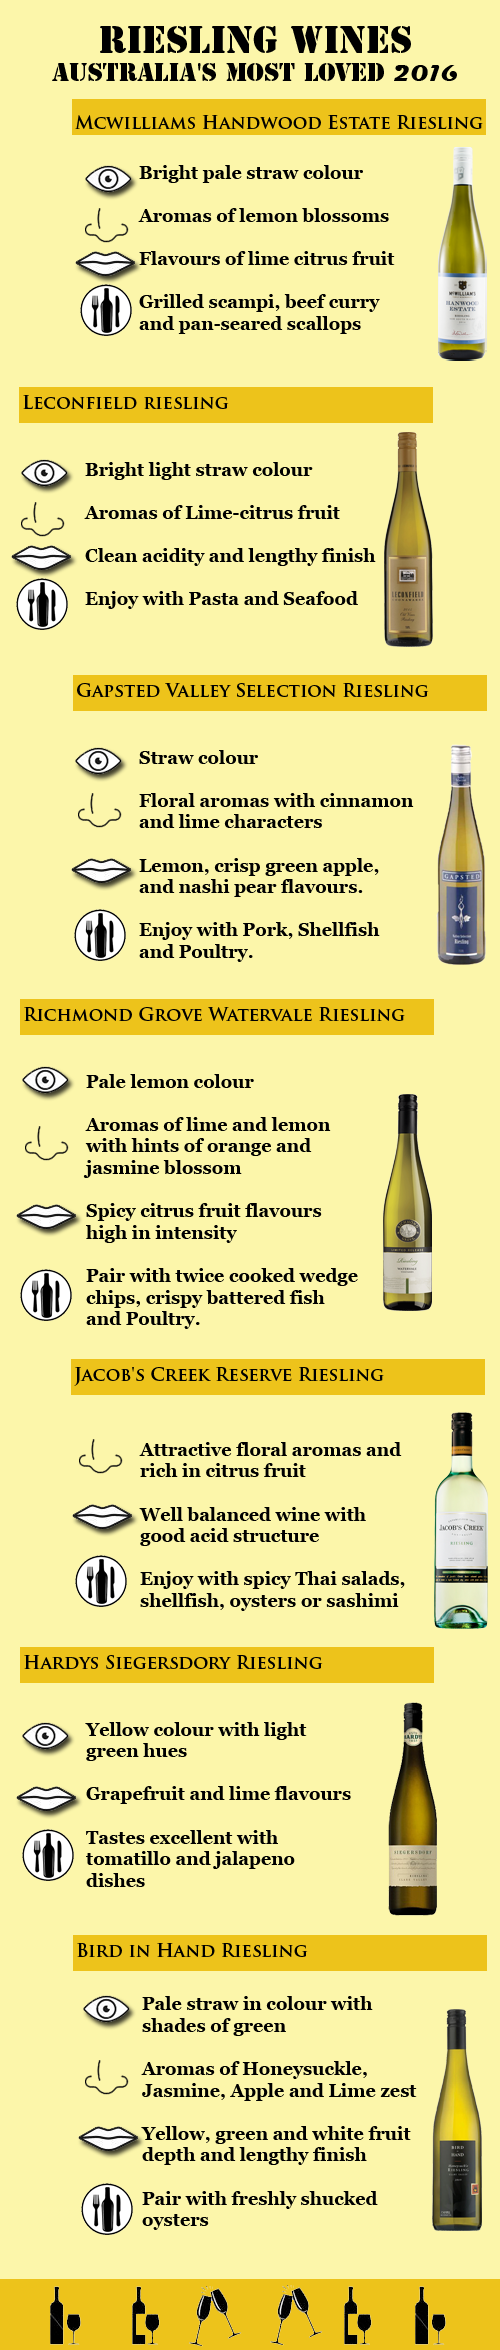 Infographic - Australias most loved Riesling Wines 2016